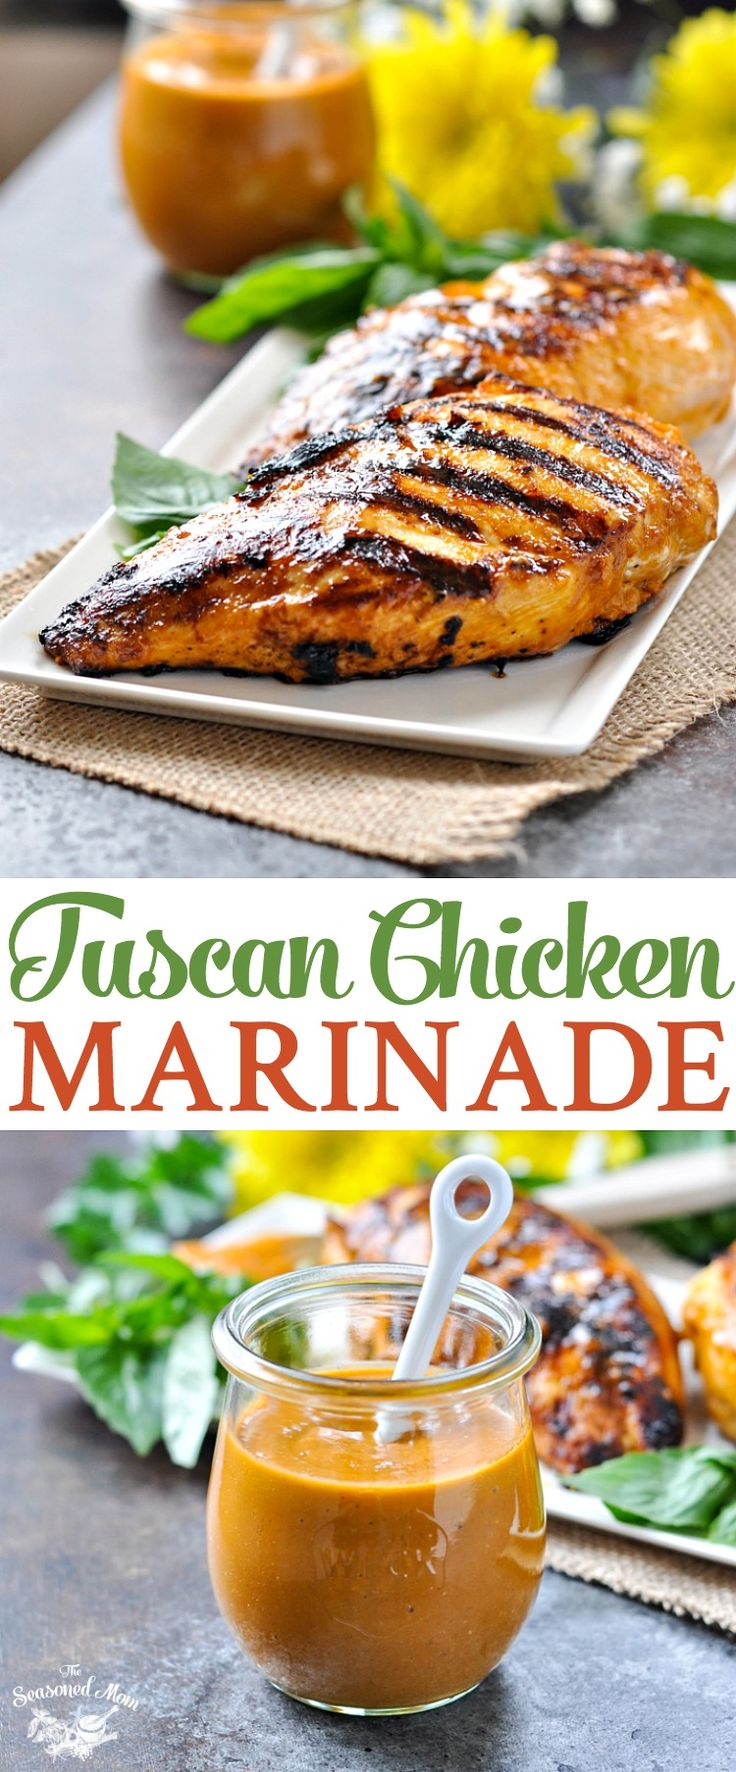 Jun 29, · The absolute best grilled chicken marinade recipe! This easy-to-whip-together marinade will become a summer staple. Grilled Chicken Marinade. The summer right after graduating college, the husband and I moved into our first home. And the very first purchase we made was a grill.5/5(18).